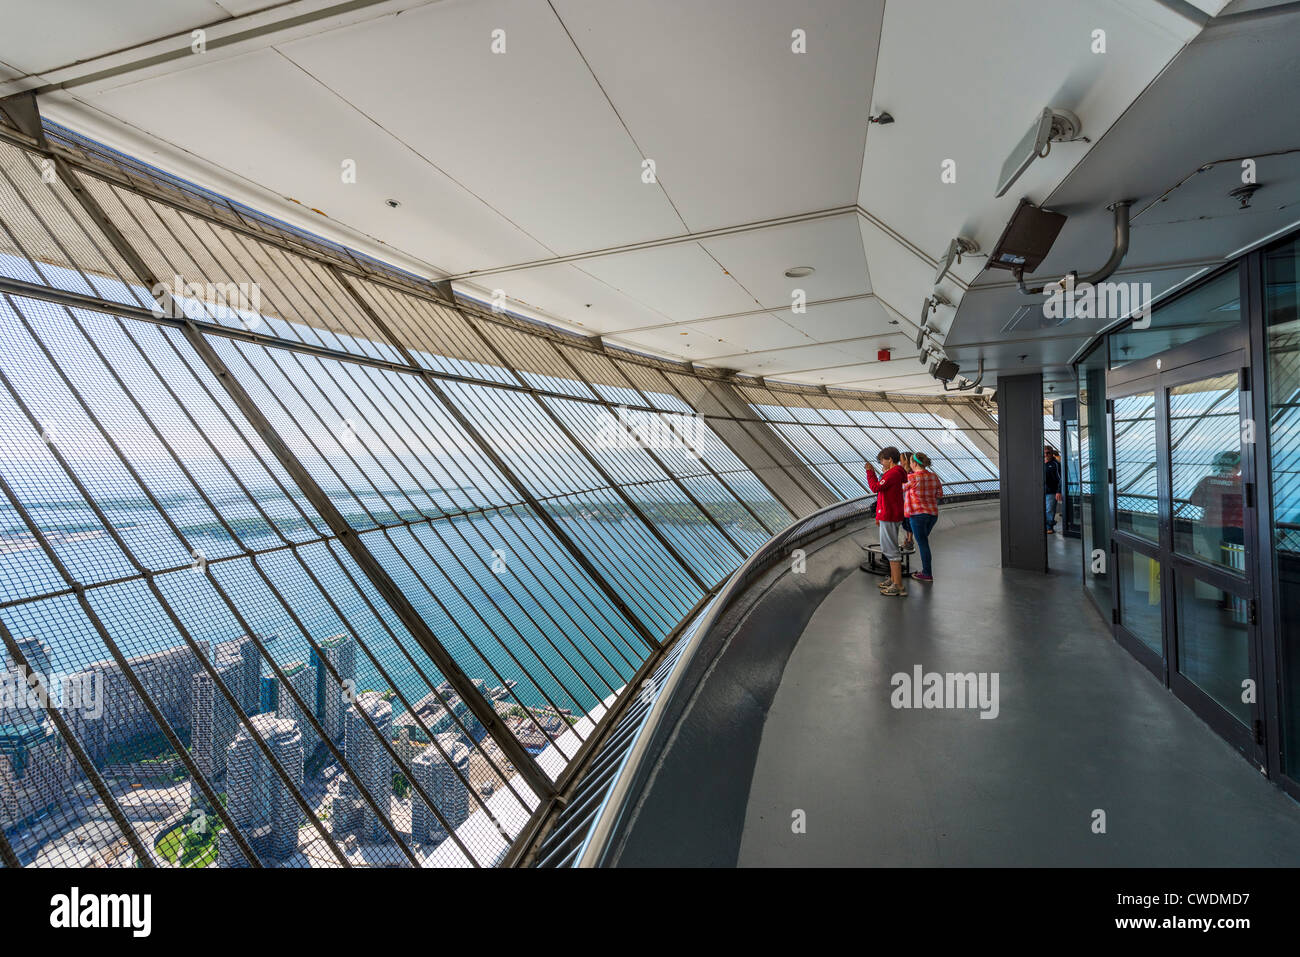 View over Lake Ontario from the Outdoor Sky Terrace at the top of the CN Tower, Toronto, Ontario, Canada - Stock Image